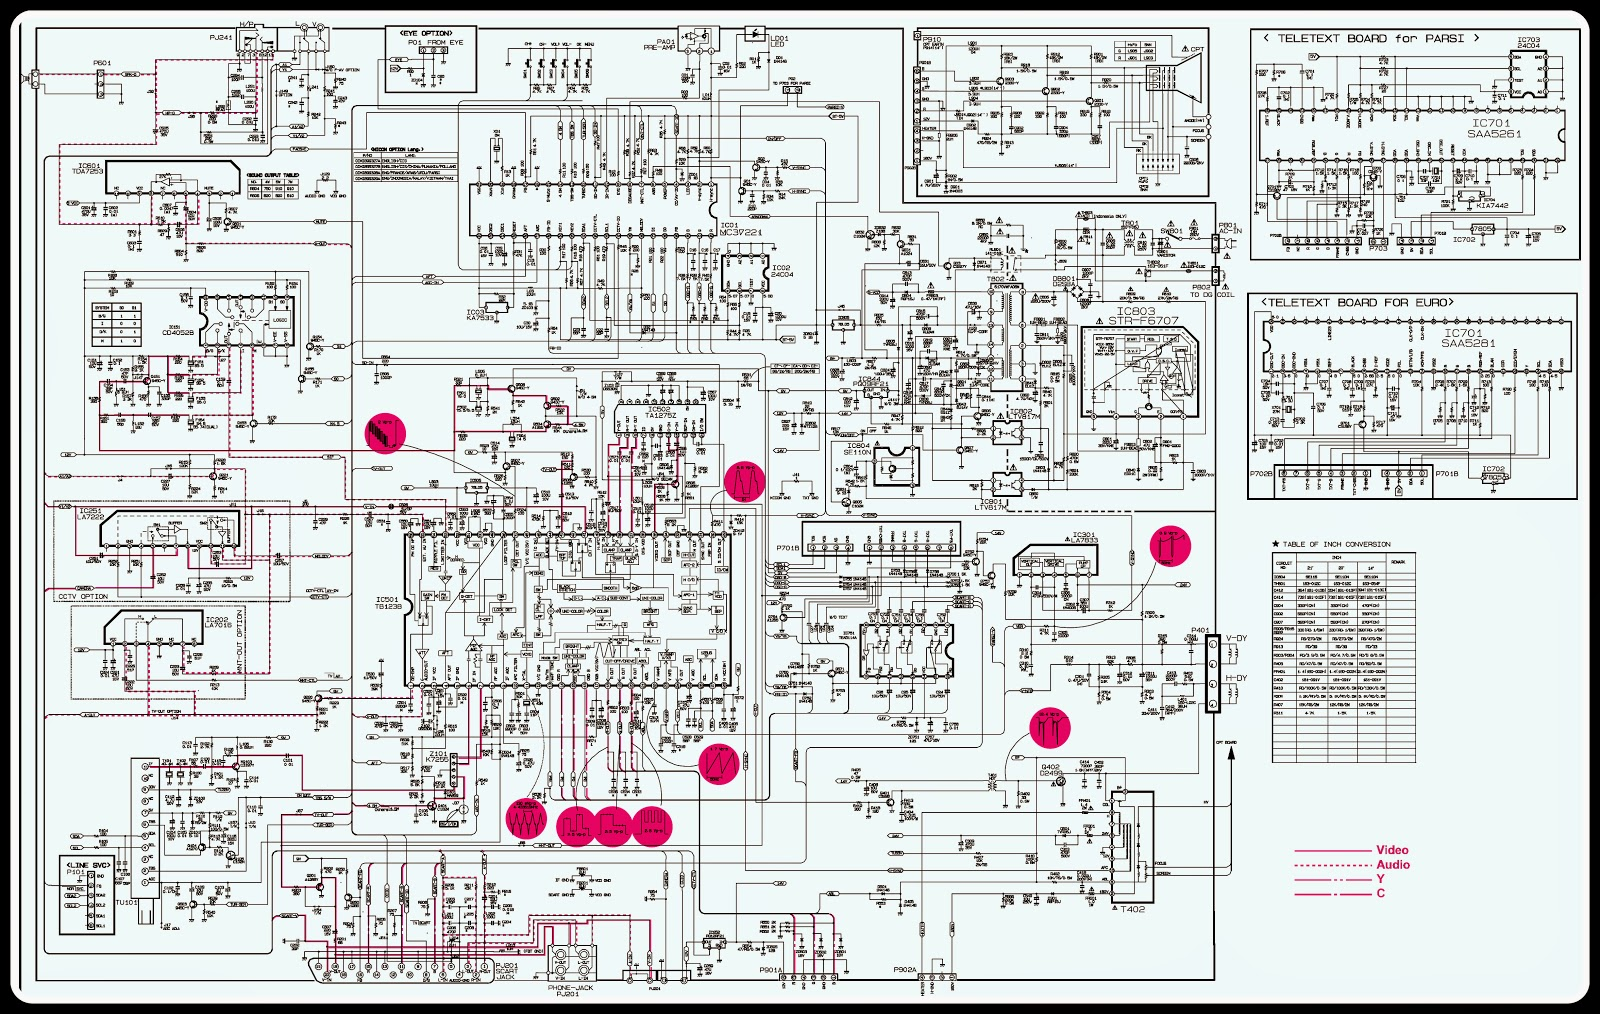 medium resolution of led tv circuit diagram pdf wiring diagram log led tv diagram pdf wiring diagram forward led